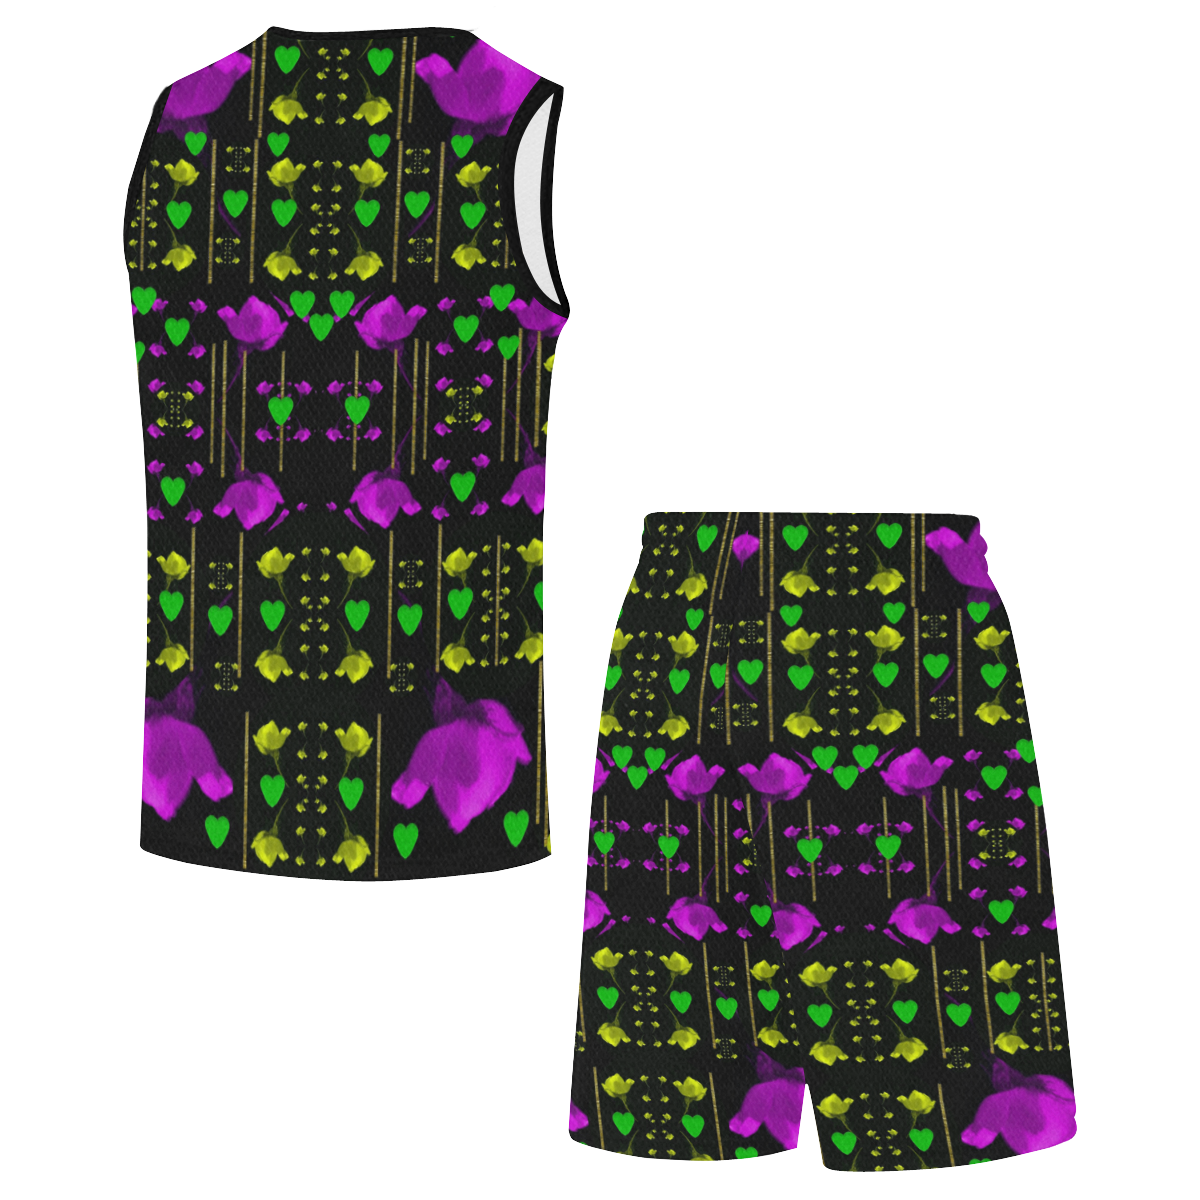 pure roses in the rose garden of love All Over Print Basketball Uniform